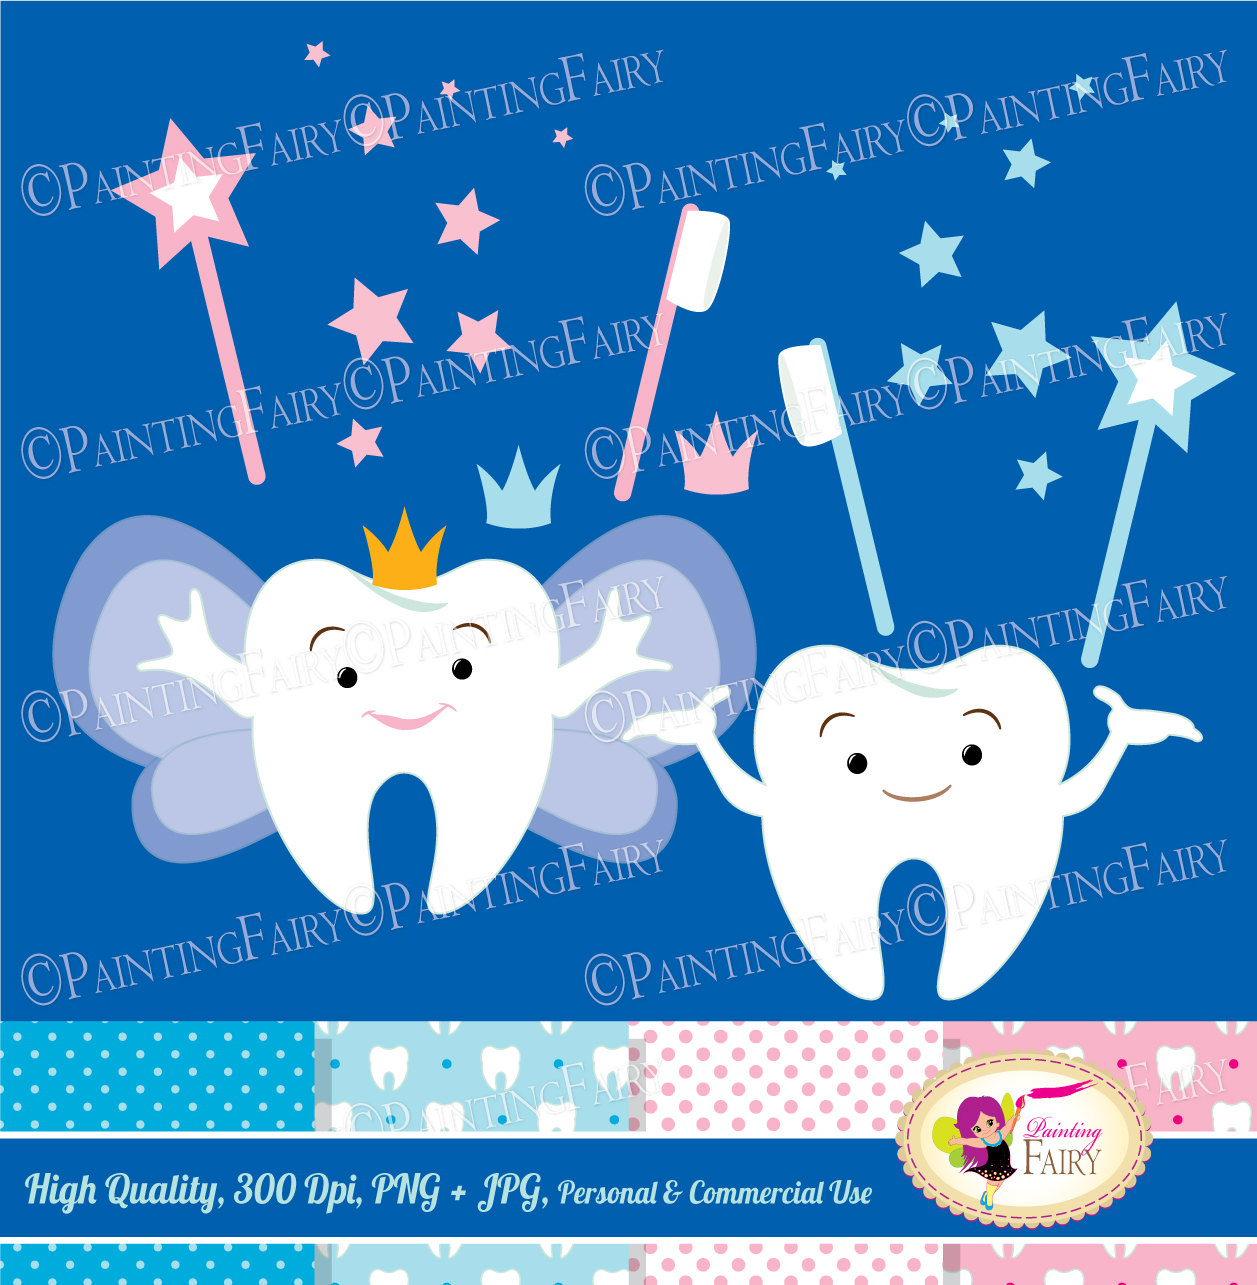 Tooth Fairy Clip Art Set Cliparts Cute teeth Pink Blue crowns stars fairy  wings magic wands toothbrush elements Digital Papers DIY pf00066.